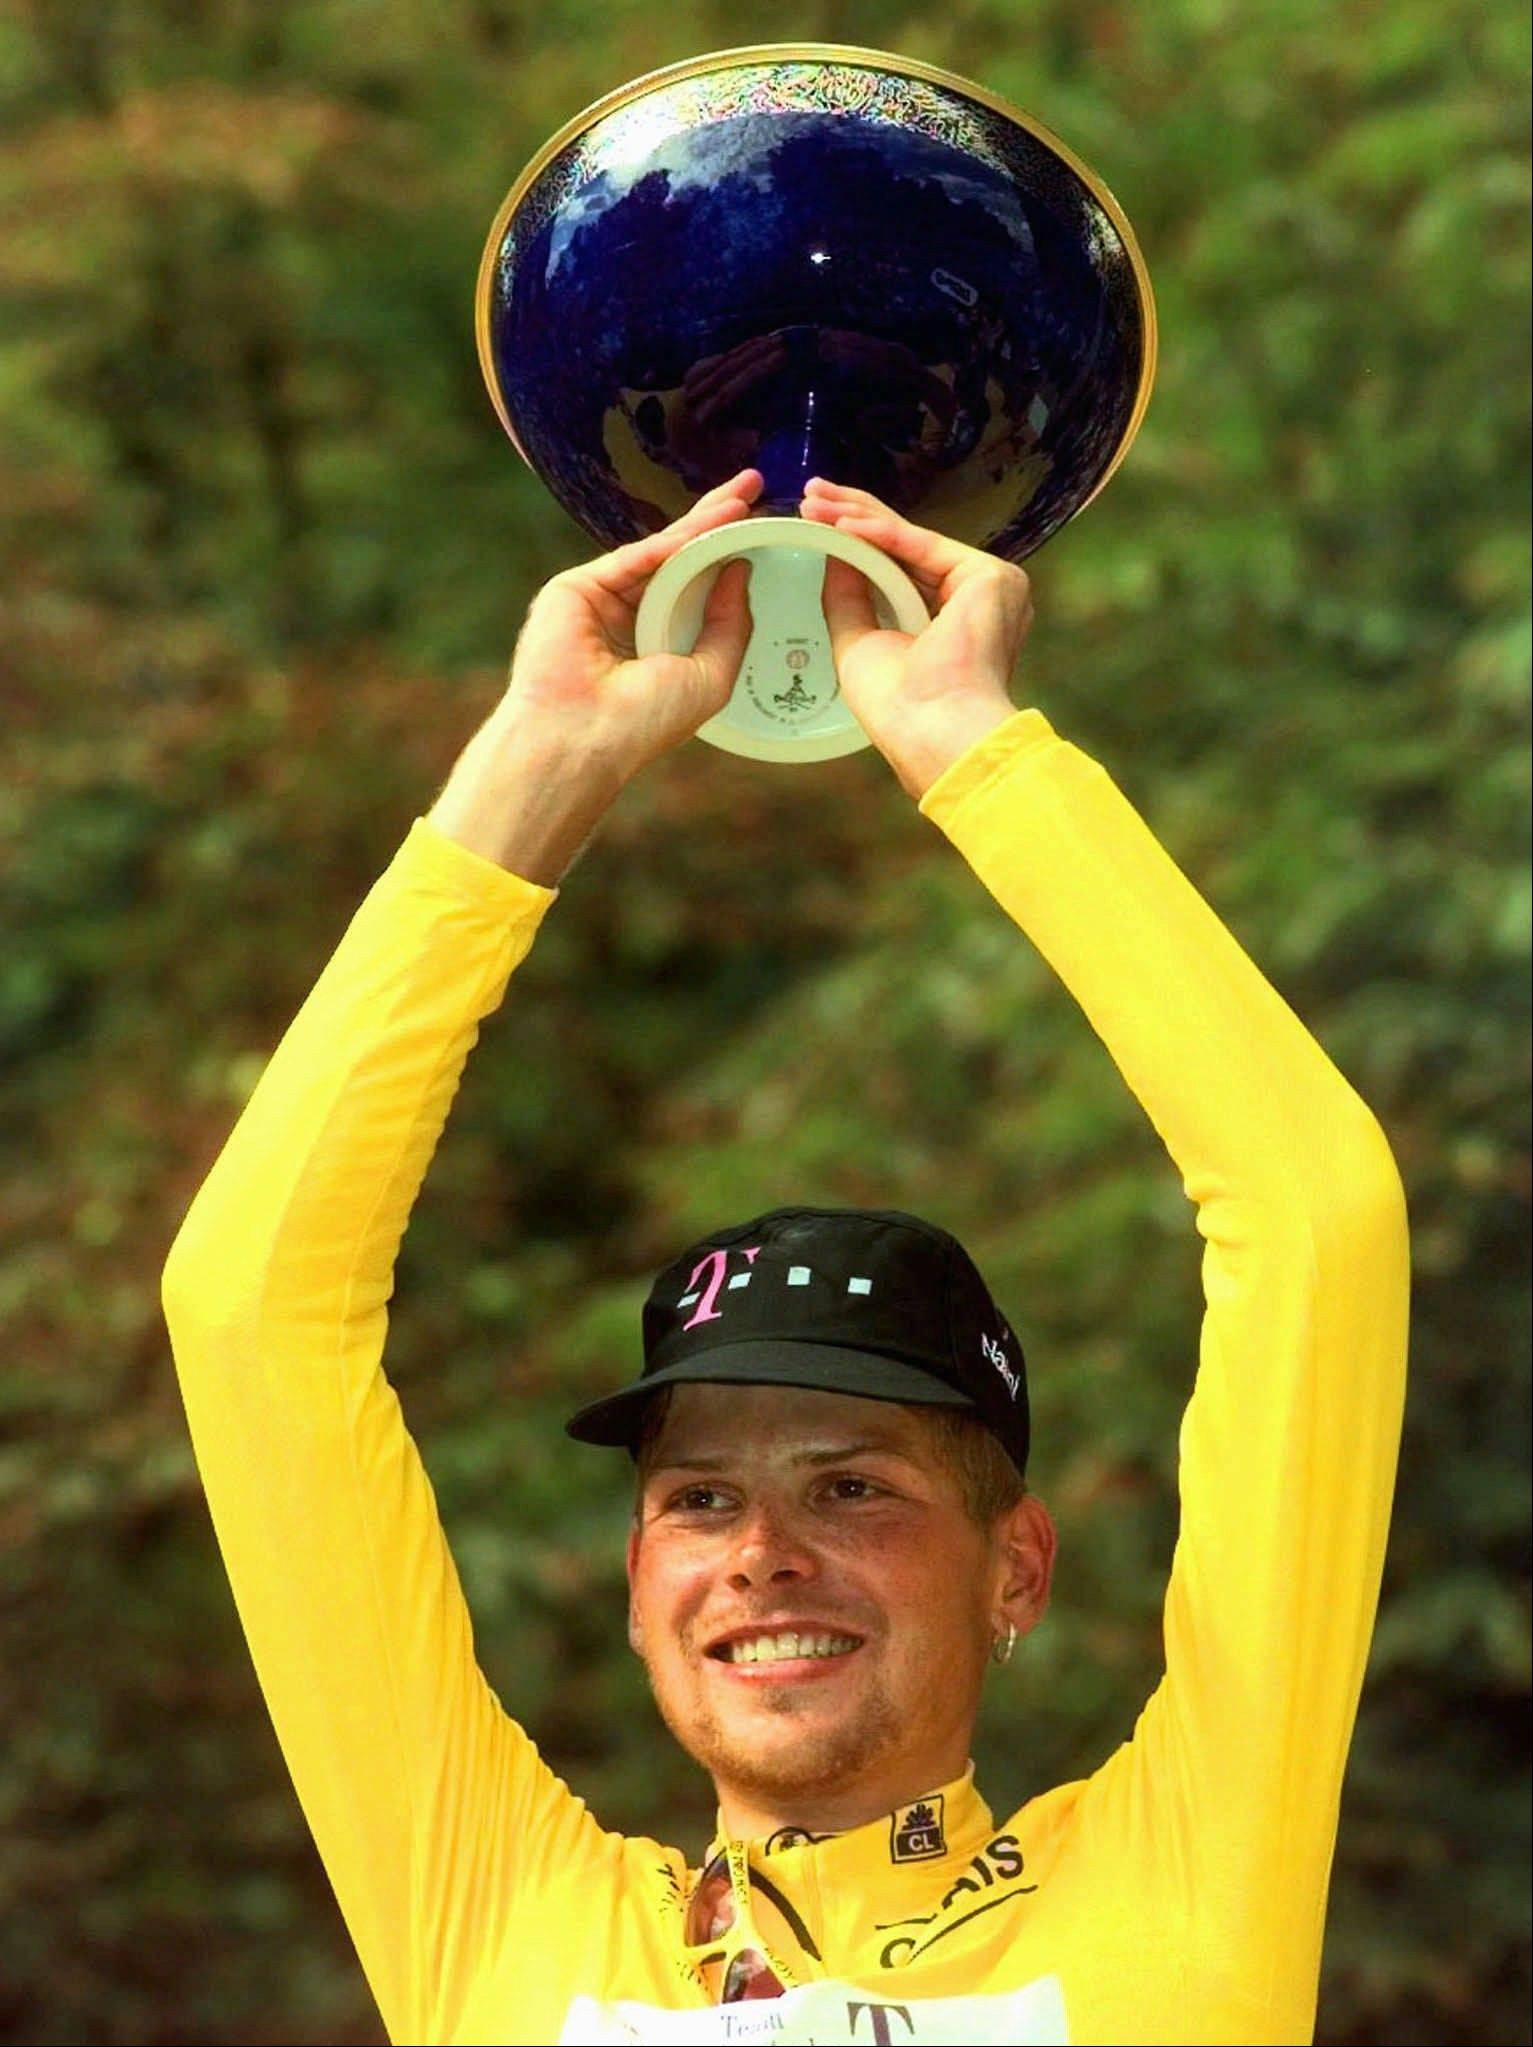 In this July 27, 1997 file photo Jan Ullrich of Germany holds the trophy on the podium after he won the 84th Tour de France cycling race in Paris. Sport's highest court has banned 1997 Tour de France winner Jan Ullrich for two years for doping, and stripped him of his third-place finish behind Lance Armstrong in the 2005 race. The Court of Arbitration for Sport ruled Thursday Feb. 9, 2012 that the 38-year-old German, who retired in 2007, was connected to the Operation Puerto probe in Spain. Ullrich is banned from cycling through August 2013. However, CAS rejected the International Cycling Union's request to impose a life ban and disqualify all Ullrich's results since May 2002. CAS said Ullrich's six-month ban for using amphetamines out-of-competition in 2002 should not be classed as a doping offense. A second offense can trigger a life ban.